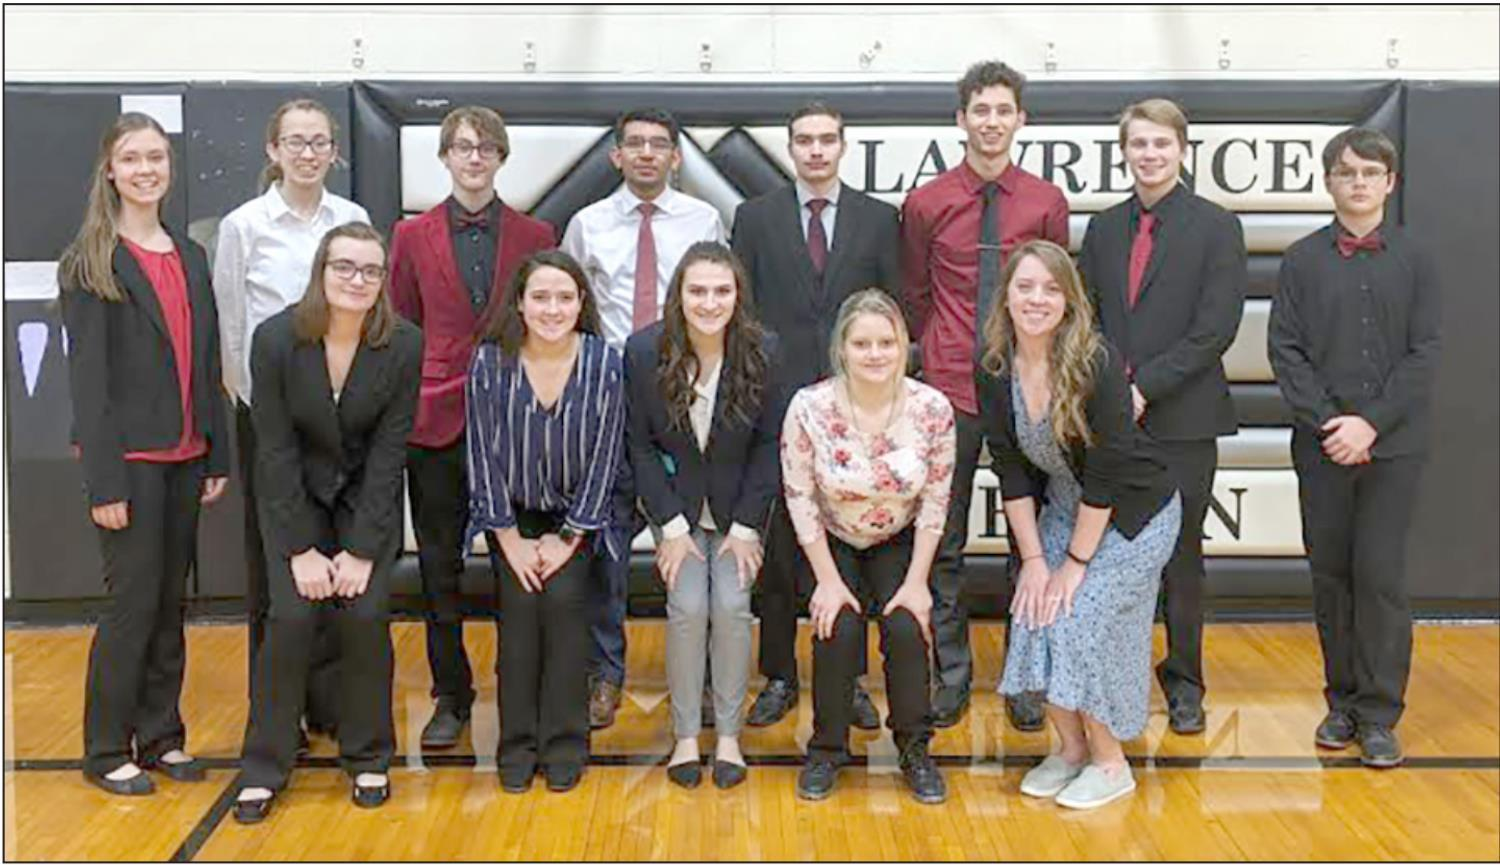 Shelton speech team members making the trip to Lawrence-Nelson for the Twin Valley Conference meet included, front row, left to right, Samantha Snyder, Breanna Plihal, Kirsten Johnson, Rose Fox, and Coach Leah Solko; and back row, Jaylea Pope, Kiersten Be